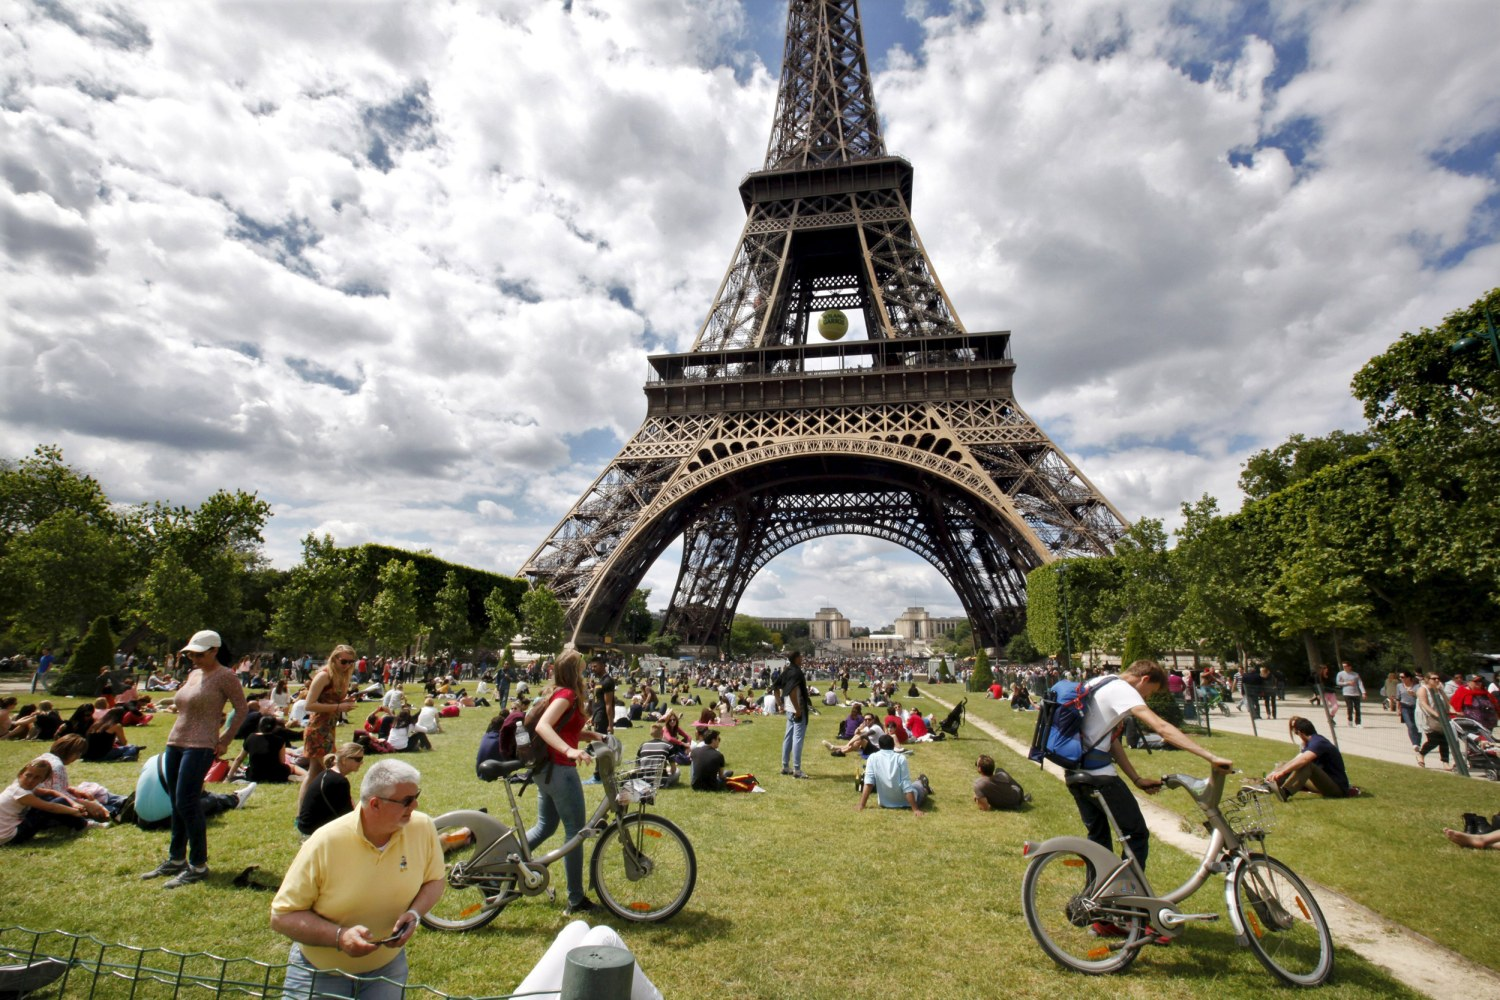 Eiffel Tower Picketpocket Gang Arrested French Police